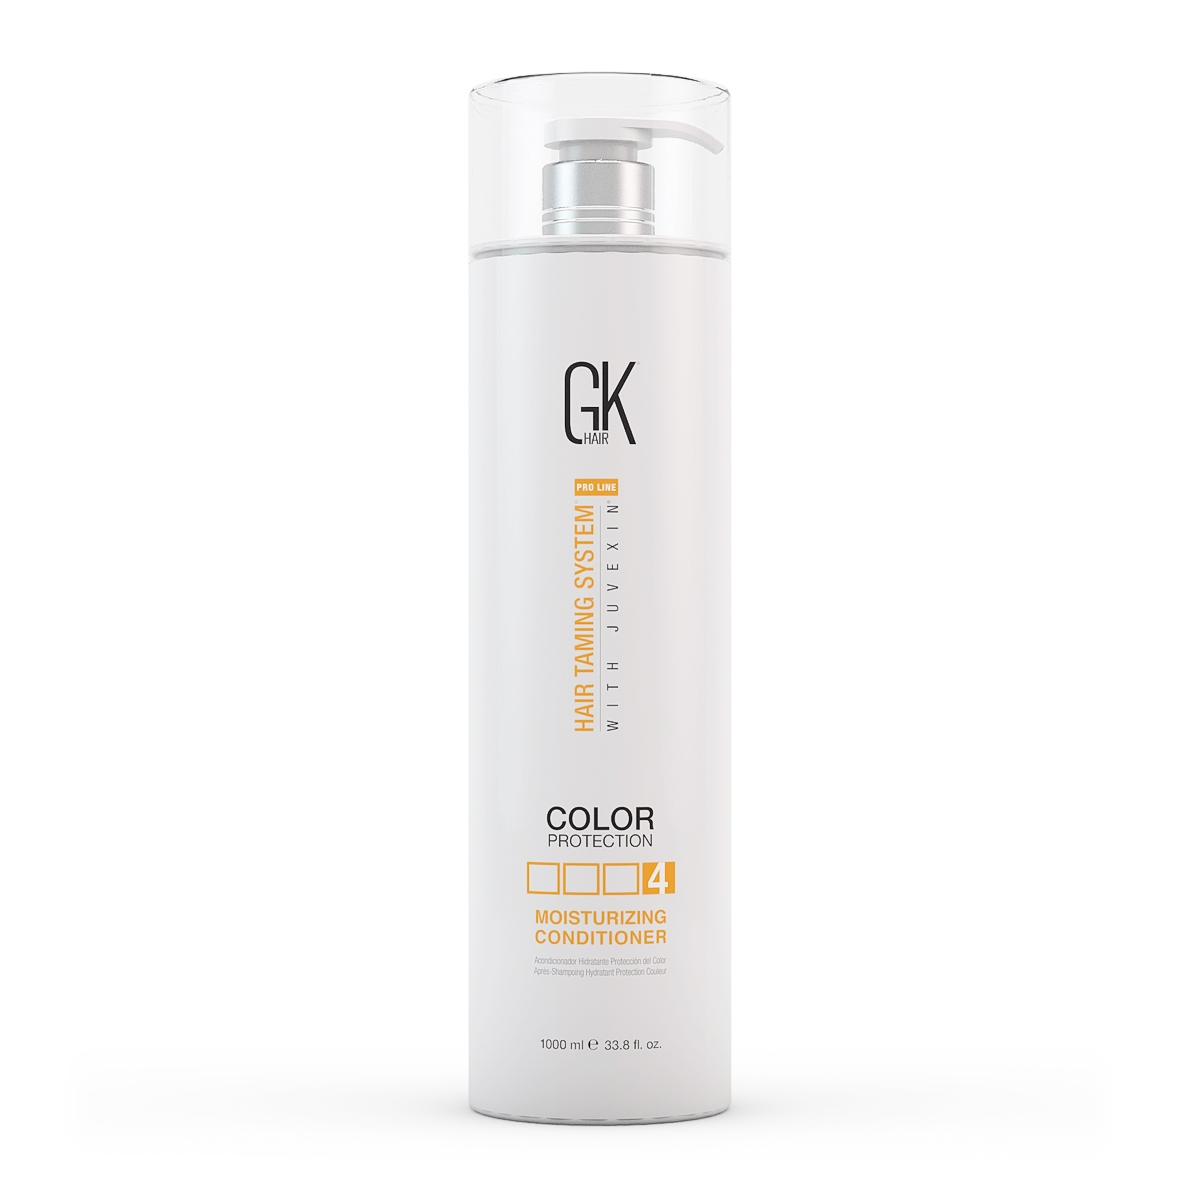 Global Keratin Кондиционер Увлажняющий Moisturizing Conditioner Color Protection, 1000 мл цена и фото